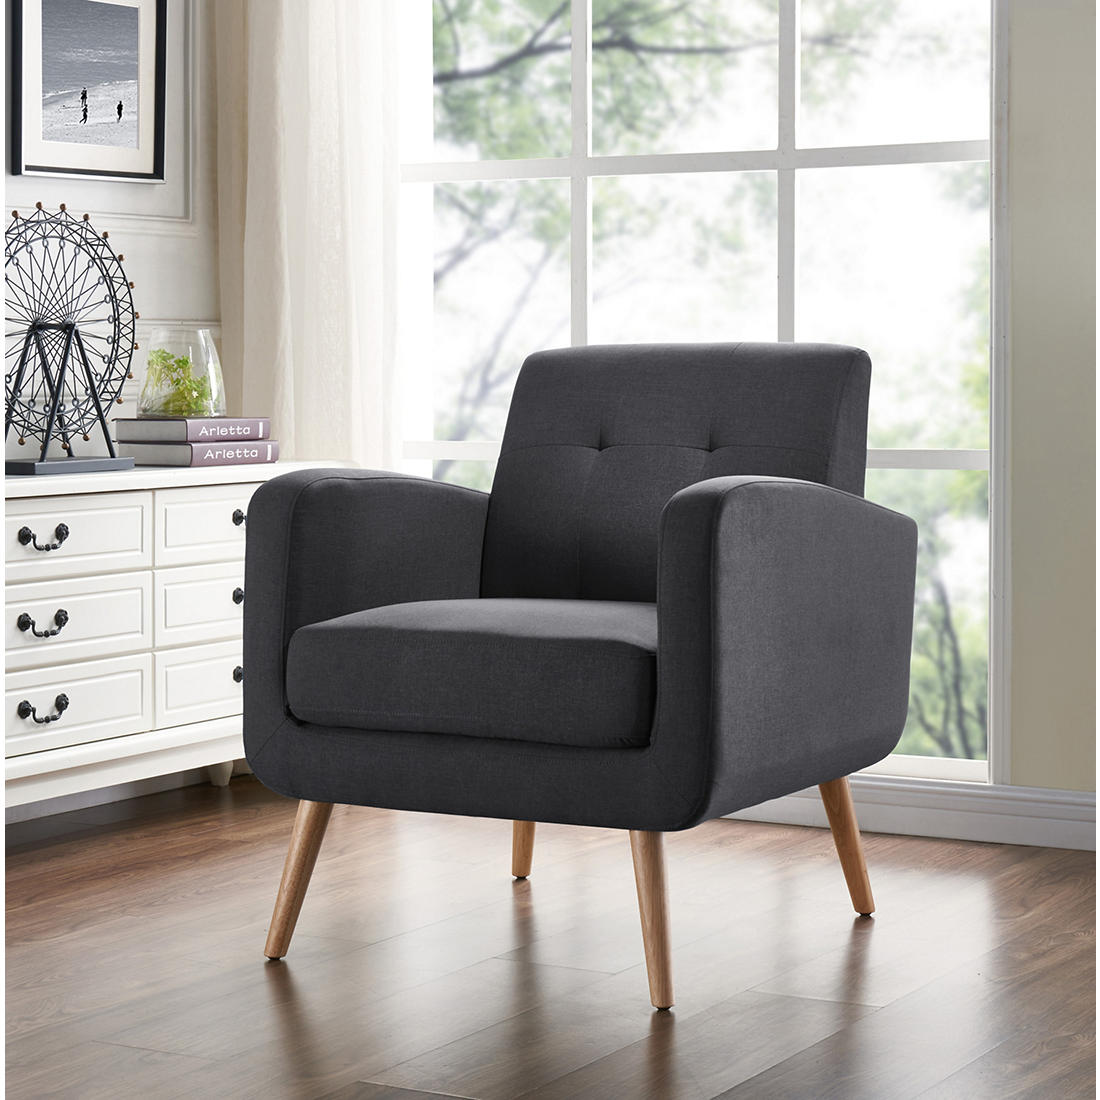 Incredible Handy Living Mid Century Modern Armchair Charcoal Linen Ocoug Best Dining Table And Chair Ideas Images Ocougorg